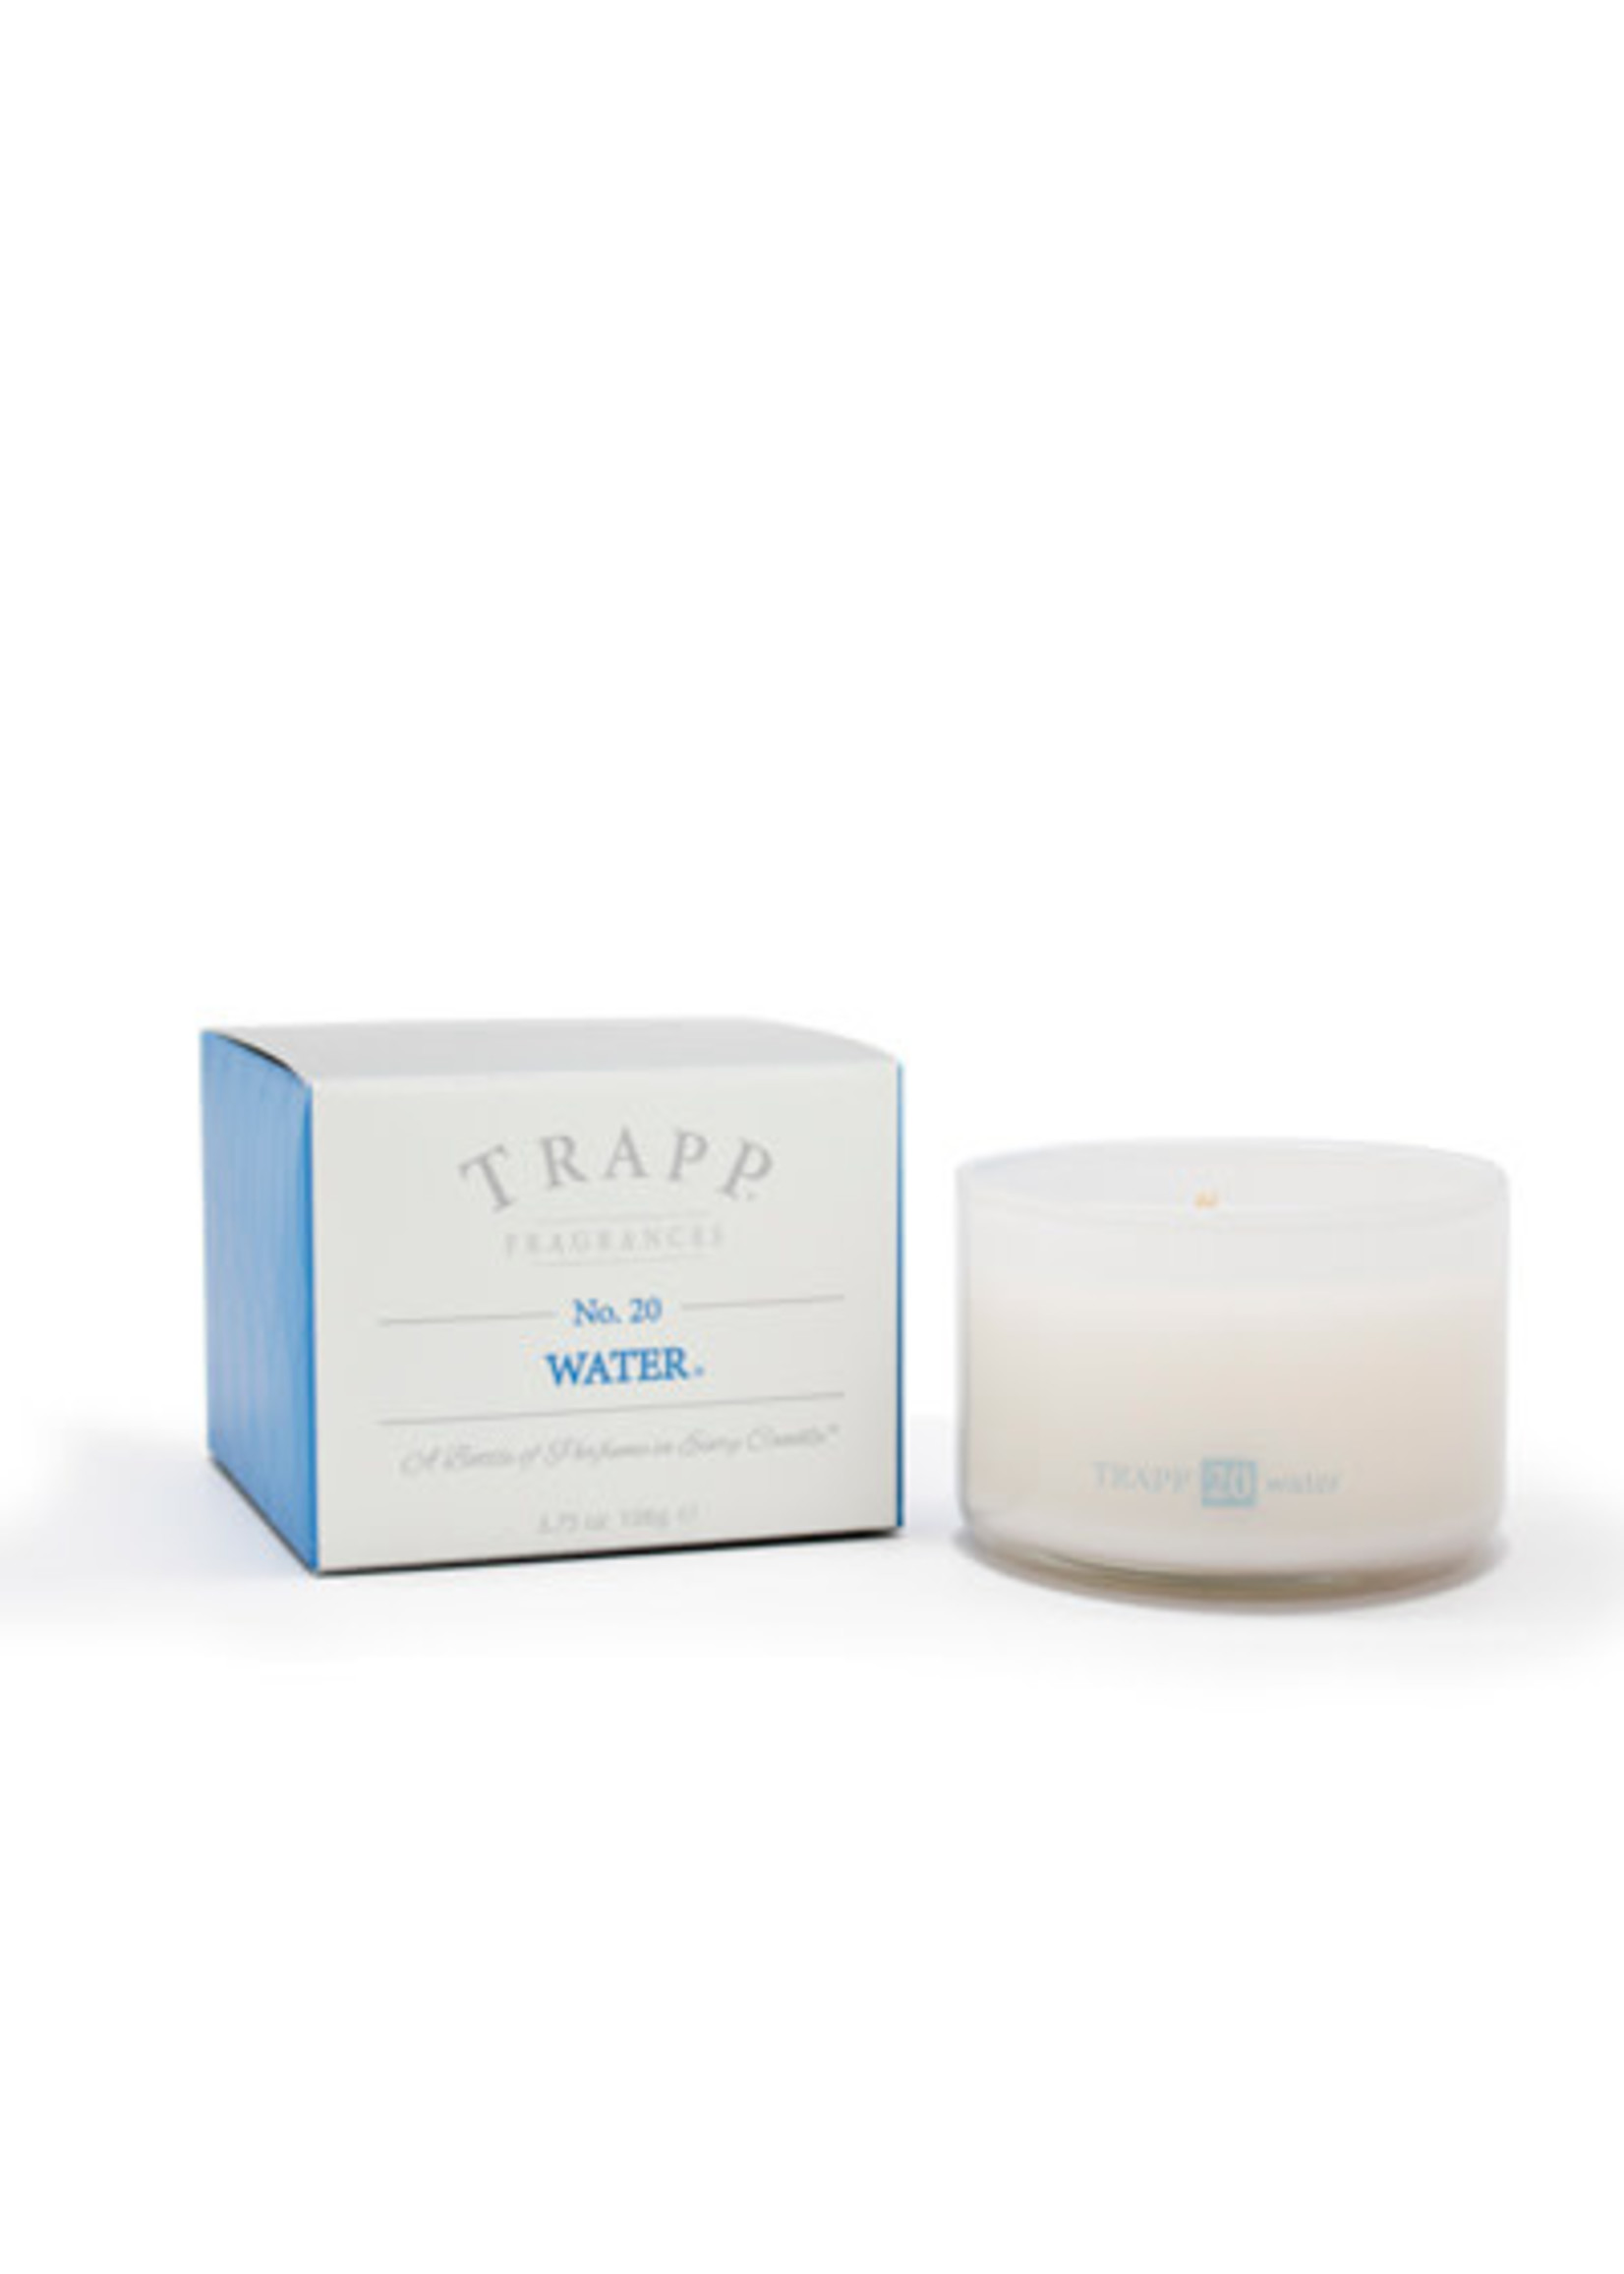 Trapp Candles Ambiance Collection - No. 20 Water - 3.75 oz. Poured Candle